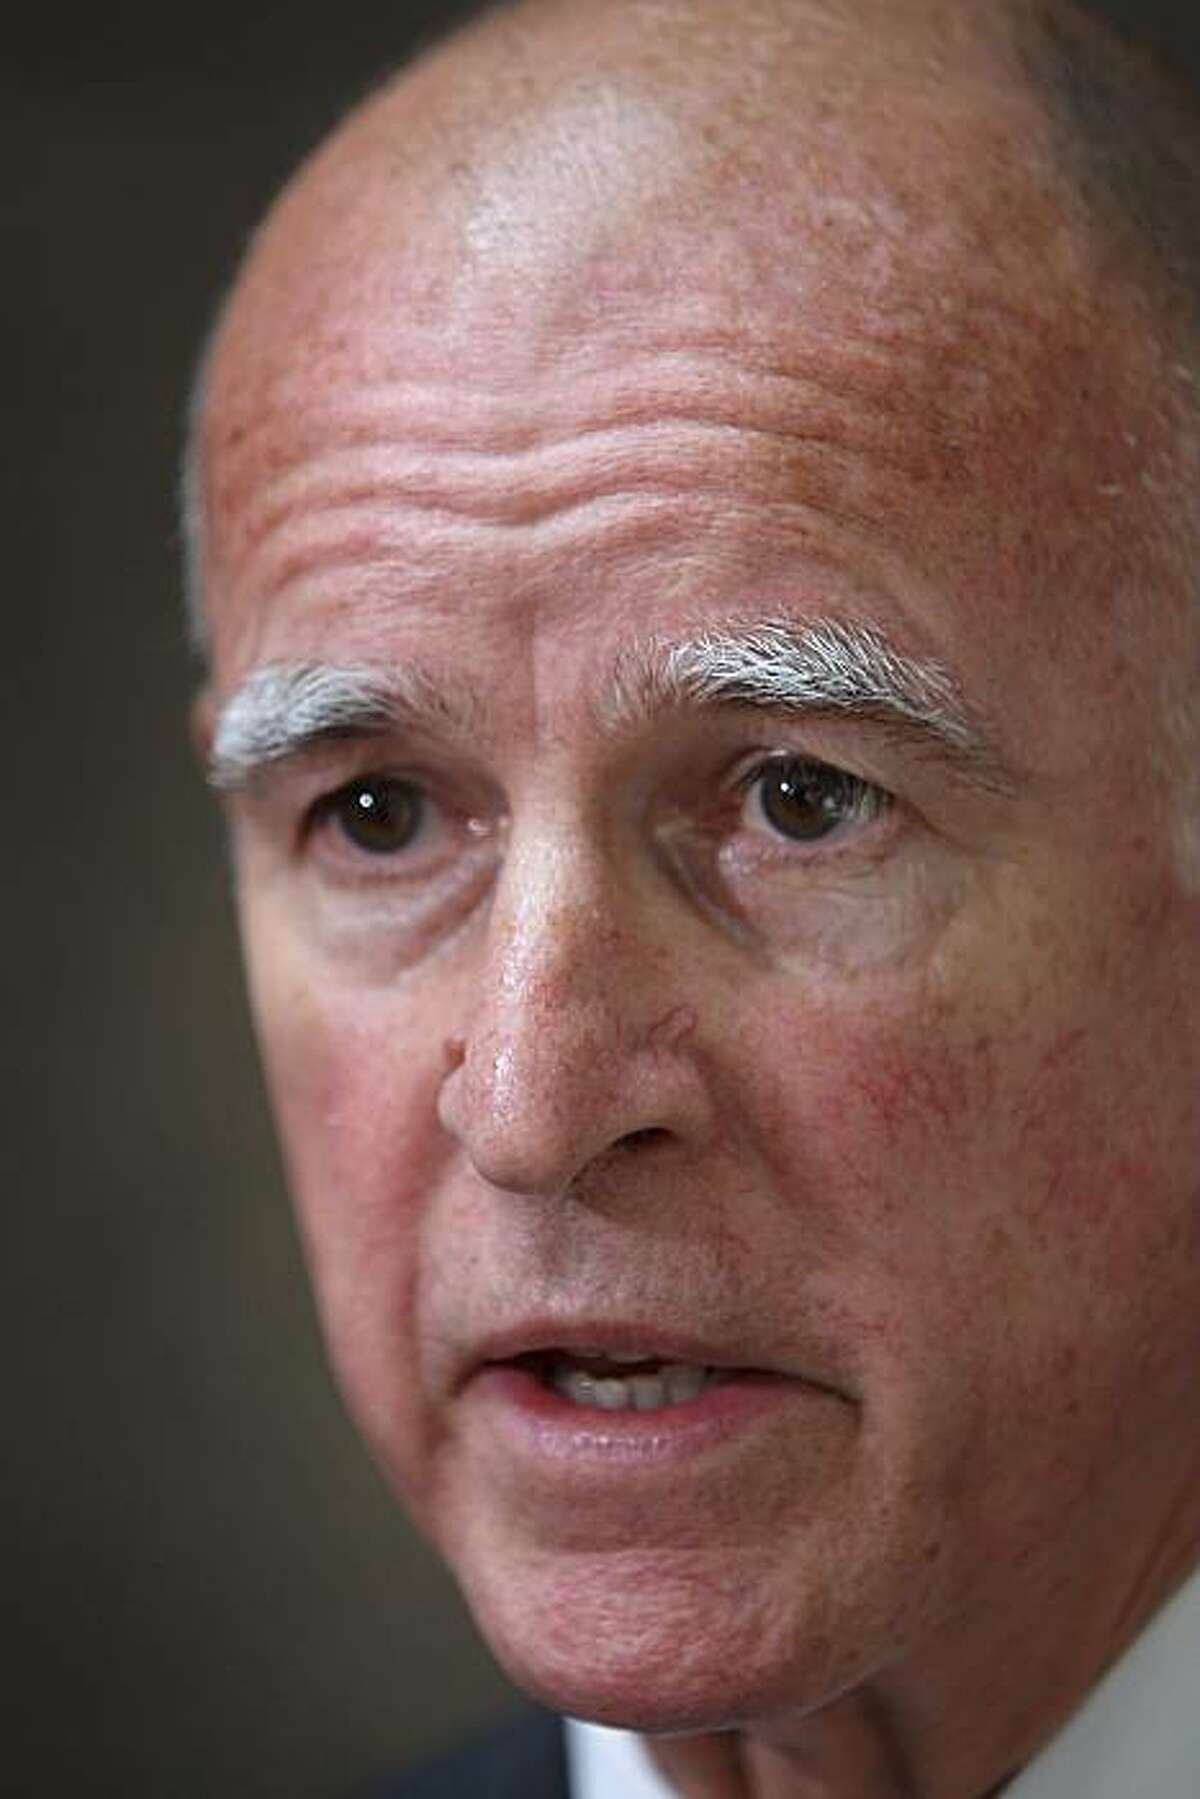 (FILES): This September 15, 2009 file photo shows California Attorney General Jerry Brown addressing a press conference in Los Angeles, California when he announced a Web-based prescription drug database to track all controlled substances prescribed in California. Brown on March 2, 2010 formally entered the race to replace Arnold Schwarzenegger as governor, confirming a candidacy which had been widely forecast for months. Brown, 71, who served two terms as California governor from 1975 to 1983, announced his intention to run as the Democratic candidate in a video message on his website, where he vowed to clean up the state's fiscal problems. Files/David McNew/Getty Images/AFP == FOR NEWSPAPERS, INTERNET, TELCOS & TELEVISION USE ONLY == (Photo credit should read DAVID MCNEW/AFP/Getty Images)